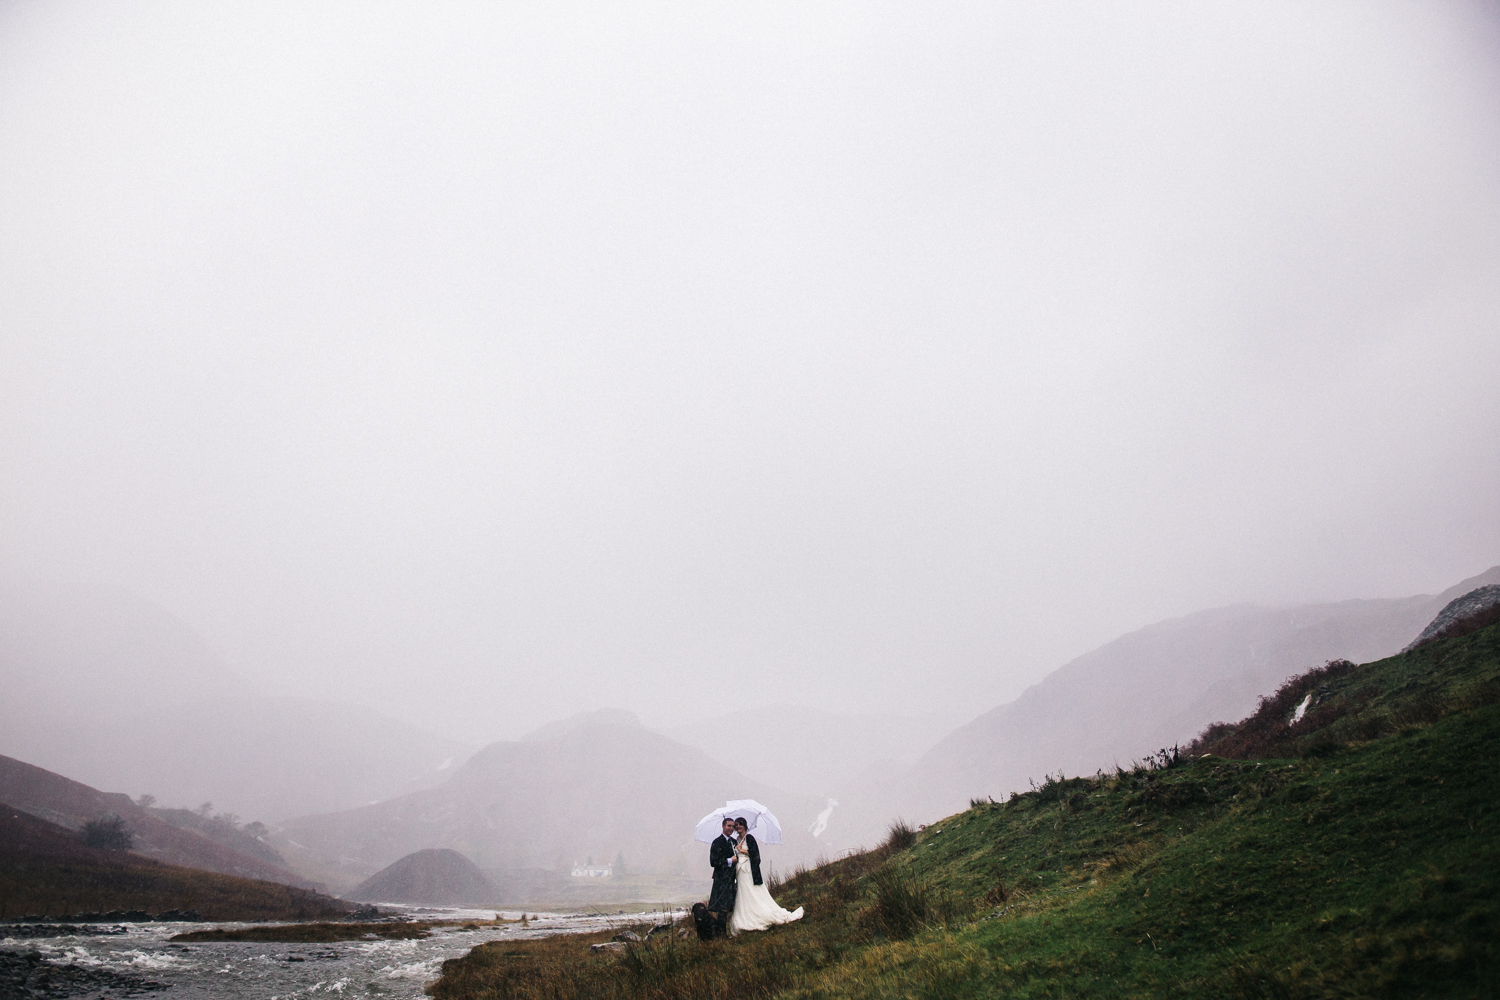 creative-relaxed-wedding-photography-stop-motion-films-teesside-north-east-yorkshire-0044.jpg